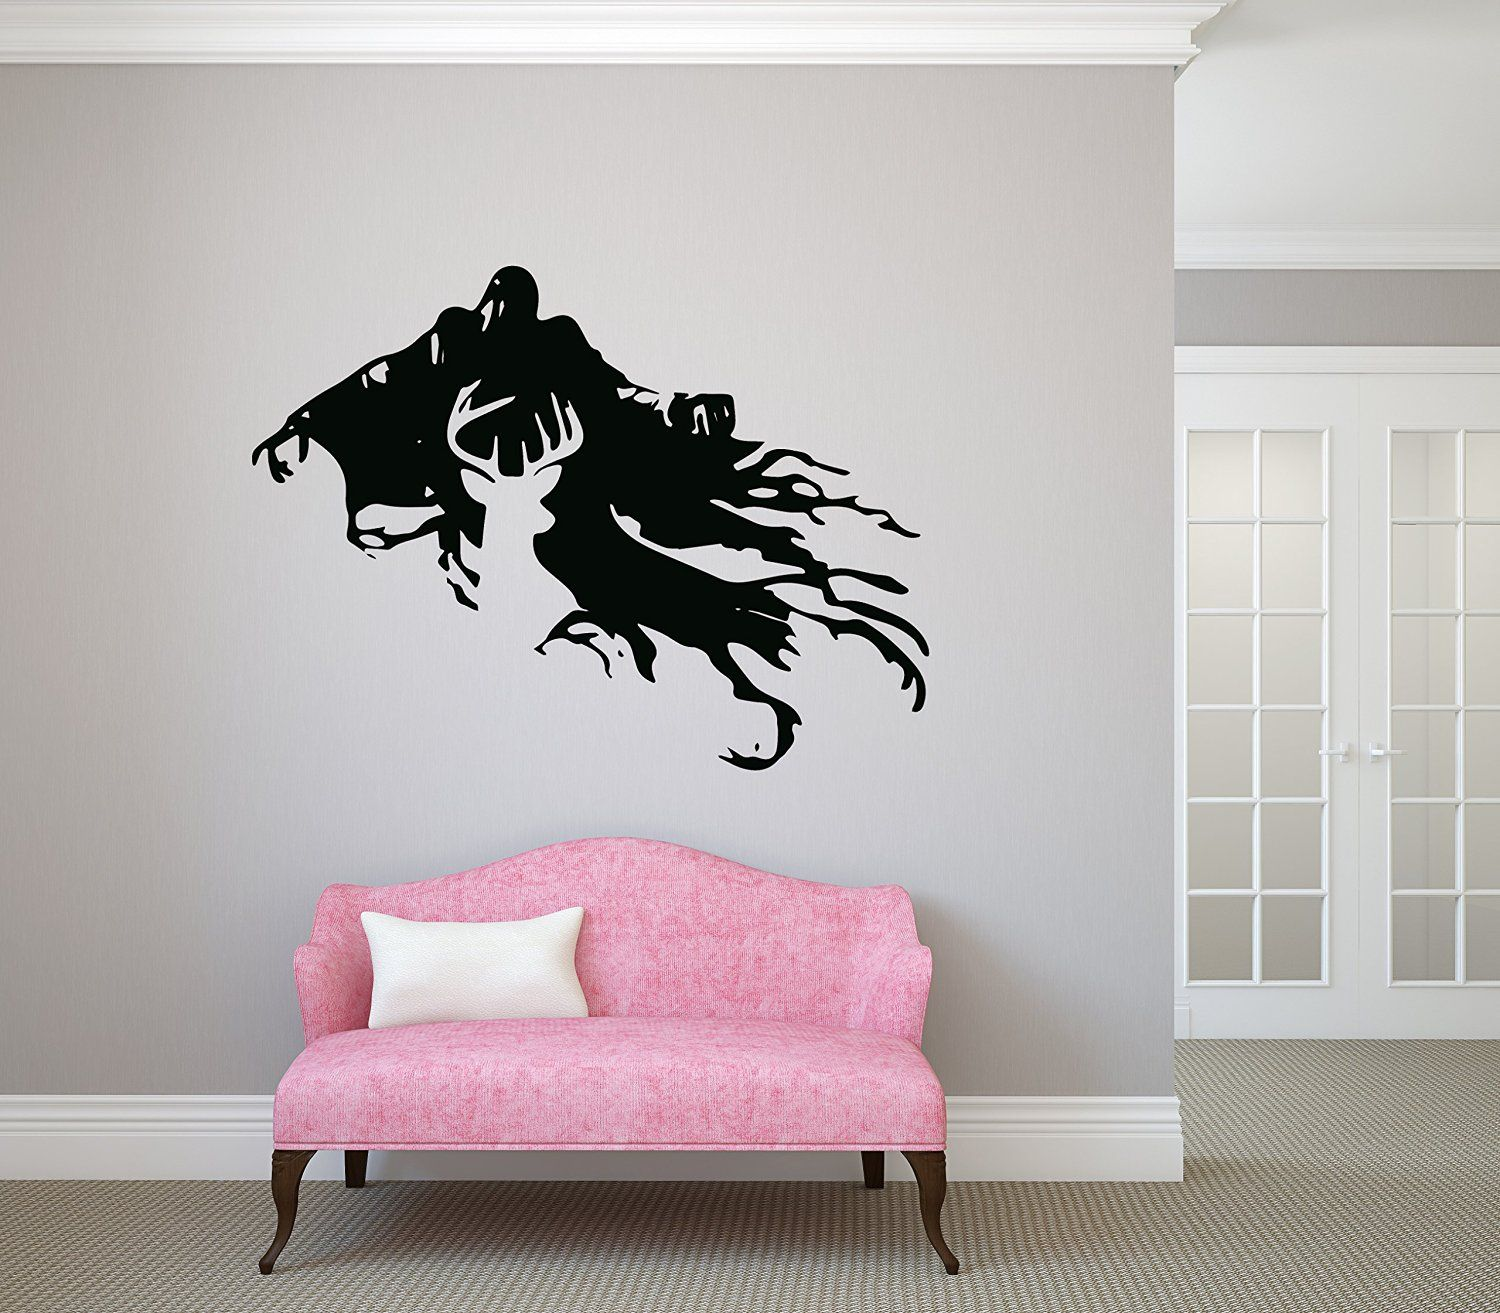 Amazon dementor and patronus harry potter decor wall decal amazon dementor and patronus harry potter decor wall decal vinyl sticker amipublicfo Gallery